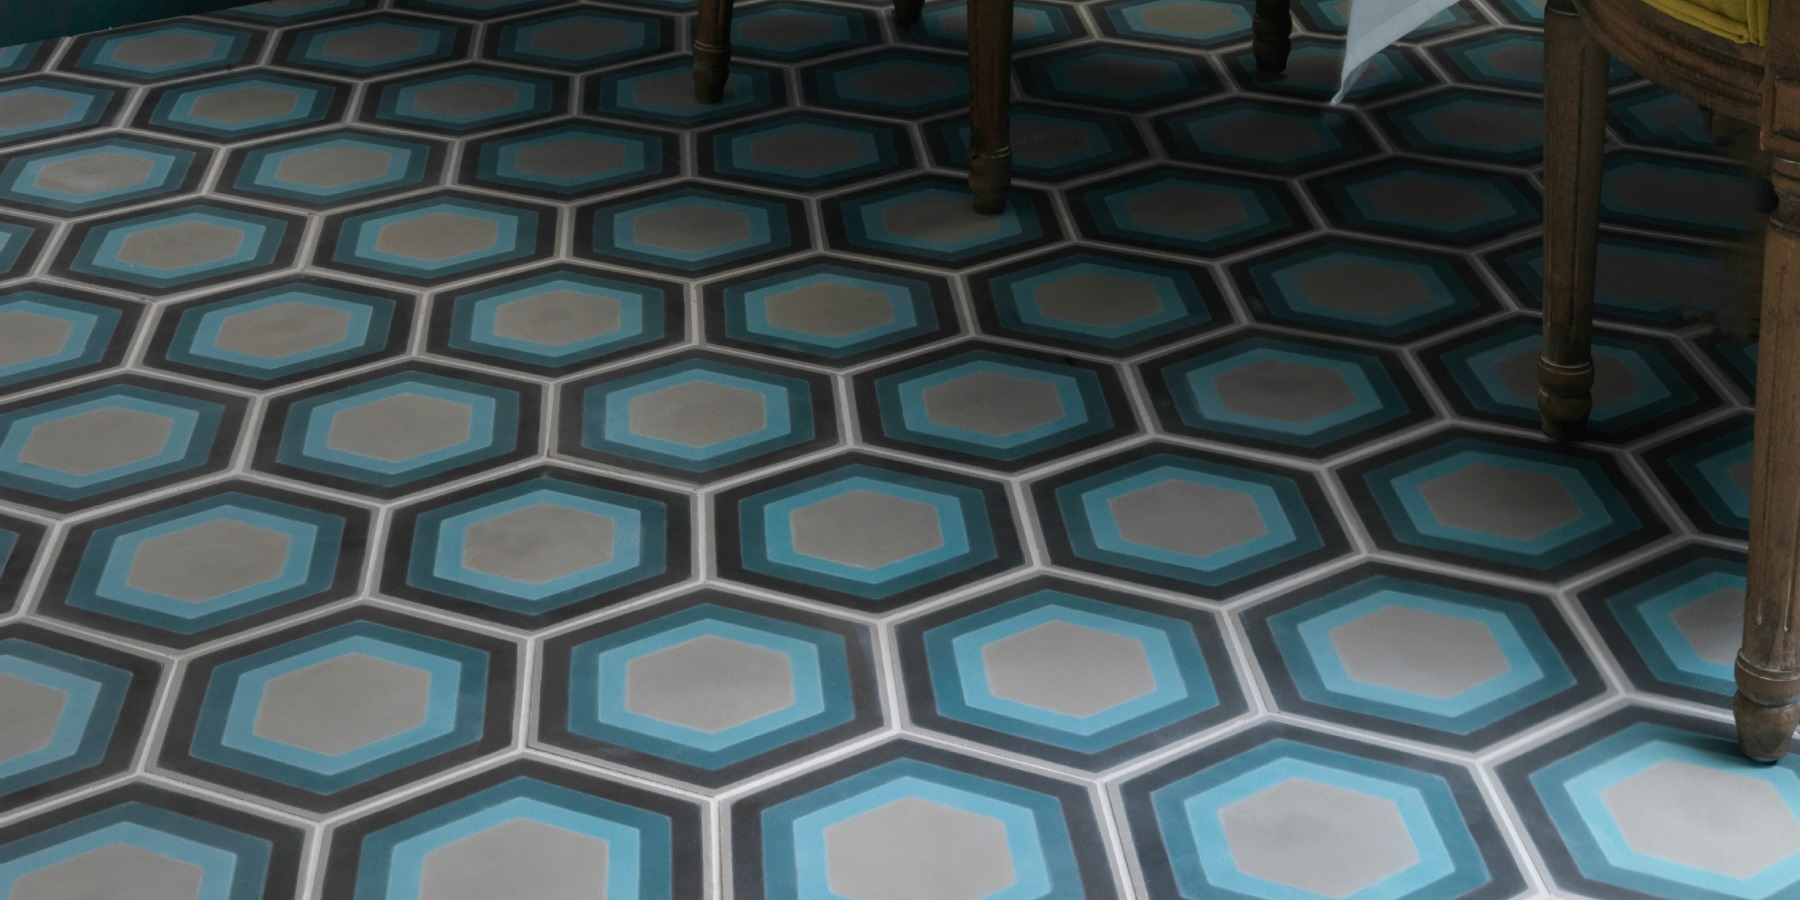 Burlanes Interiors - Handmade Encaustic tiles by Ca'Pietra